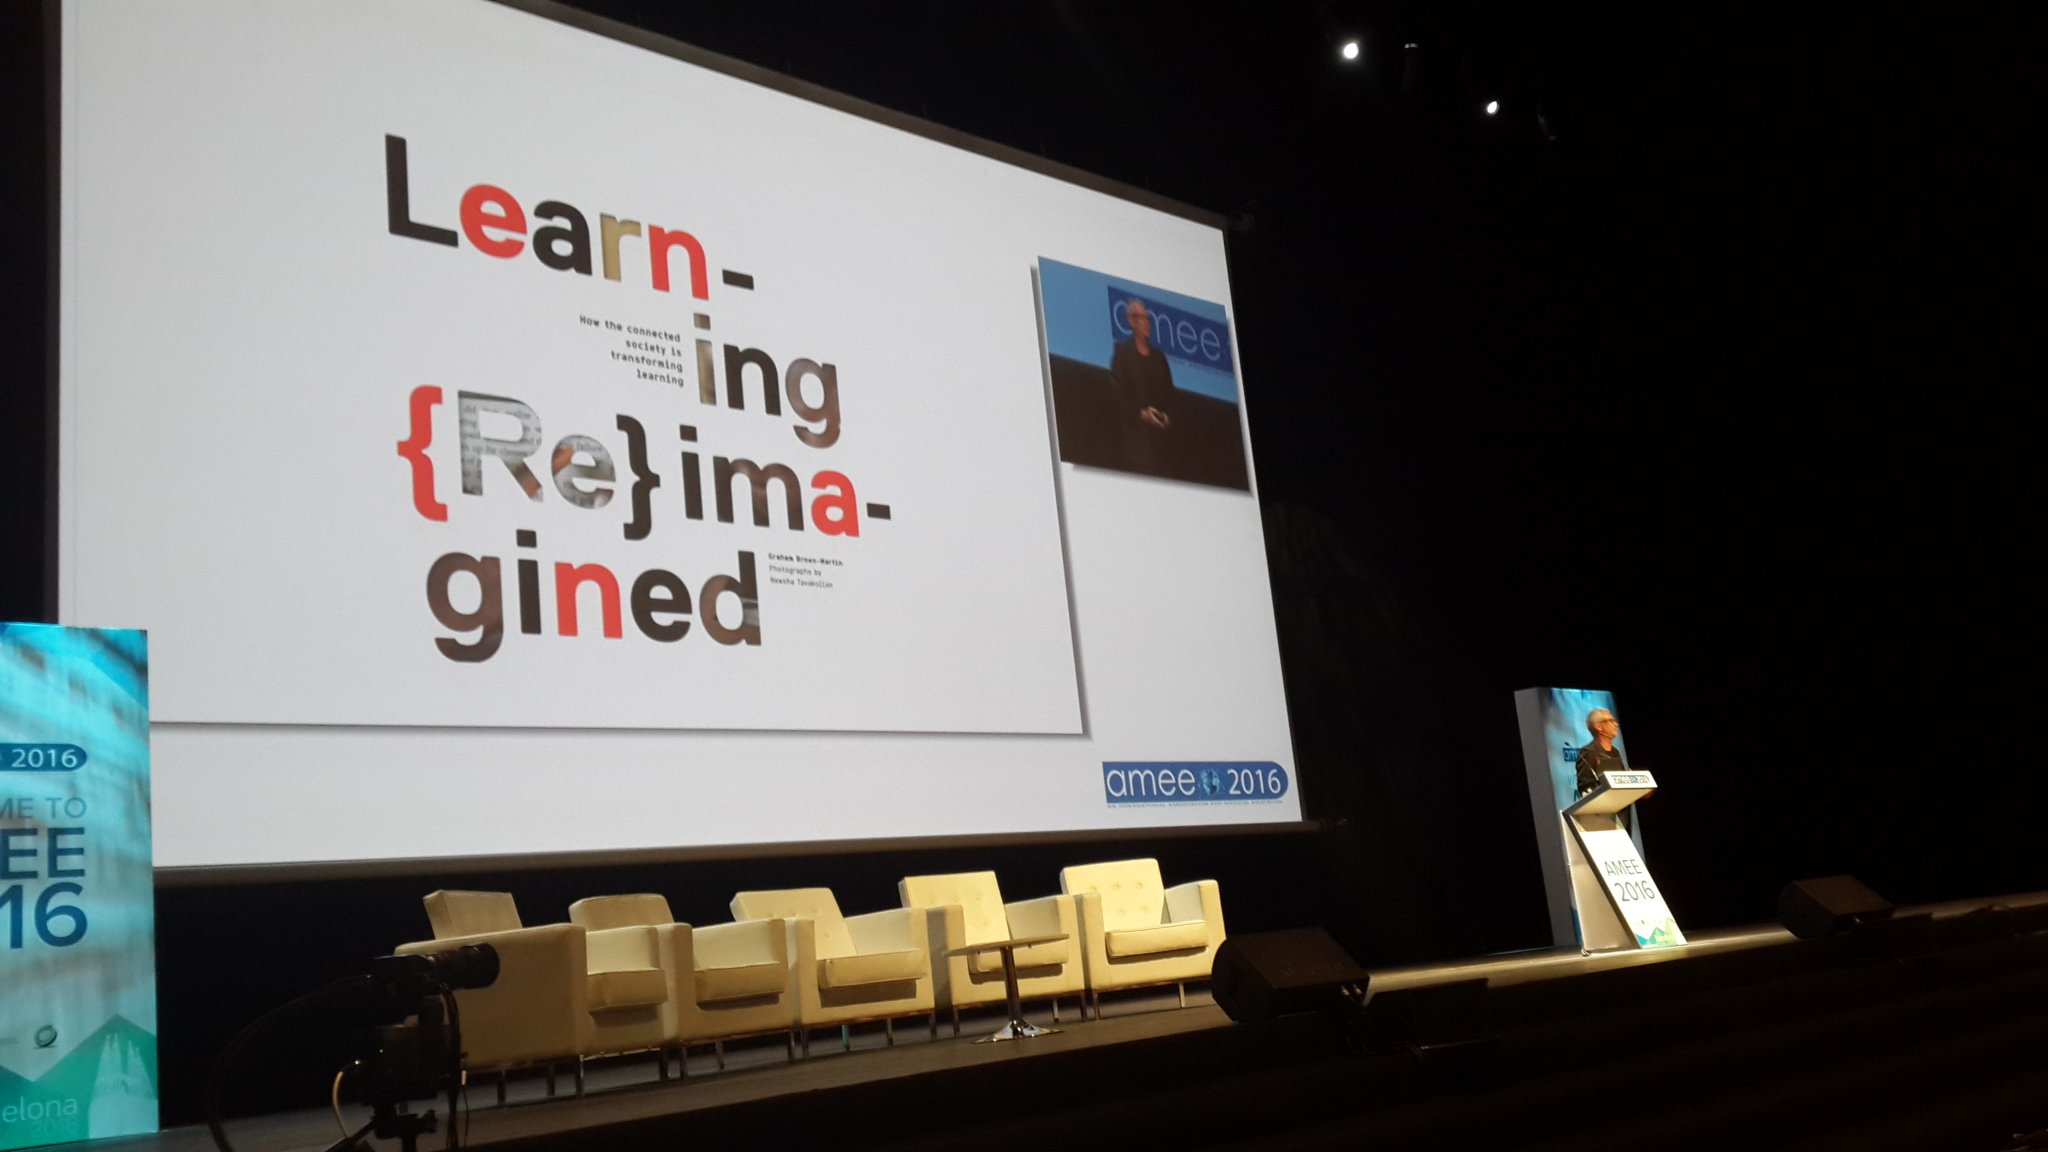 Graham Brown-Martin the first Plenary at #meded #amee2016. https://t.co/HYsMXpug6B